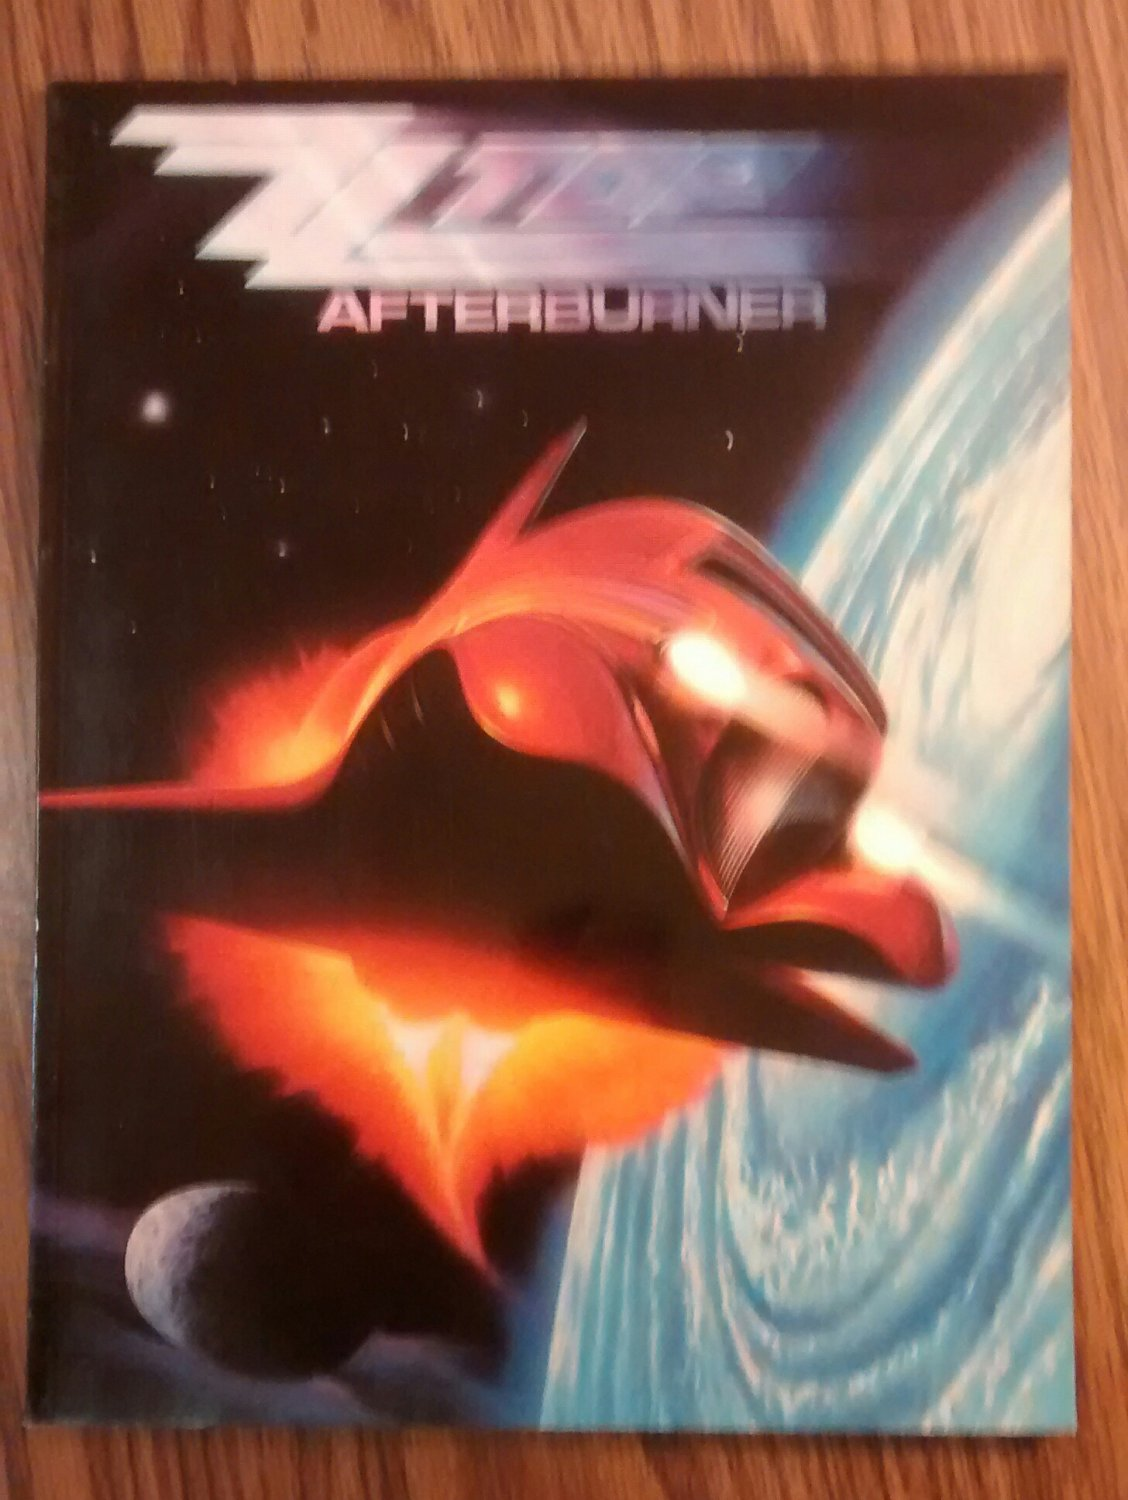 ZZ TOP SONGBOOK Afterburner song book NEW SALE